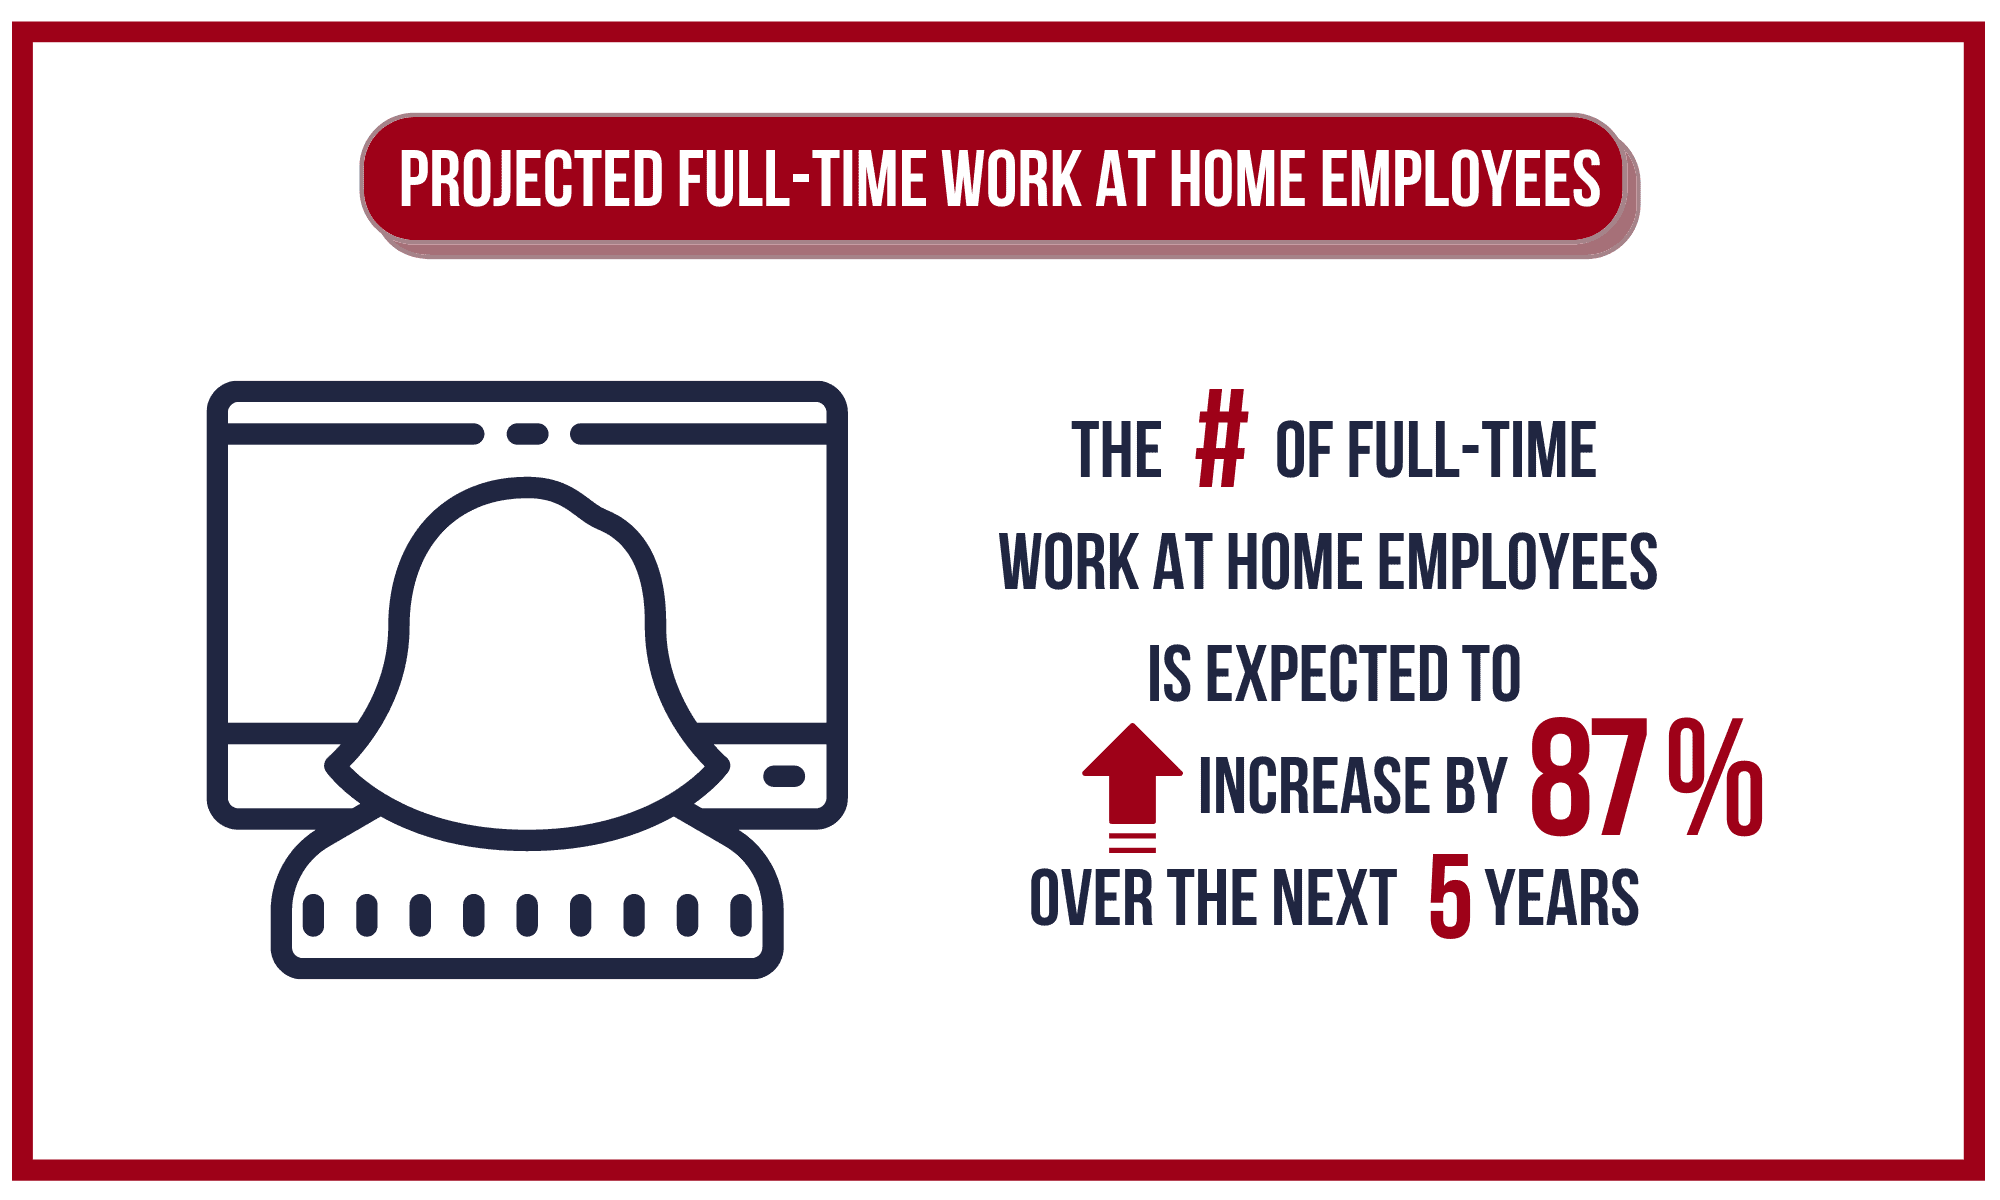 Projected Full-Time Work at Home Emmployees.